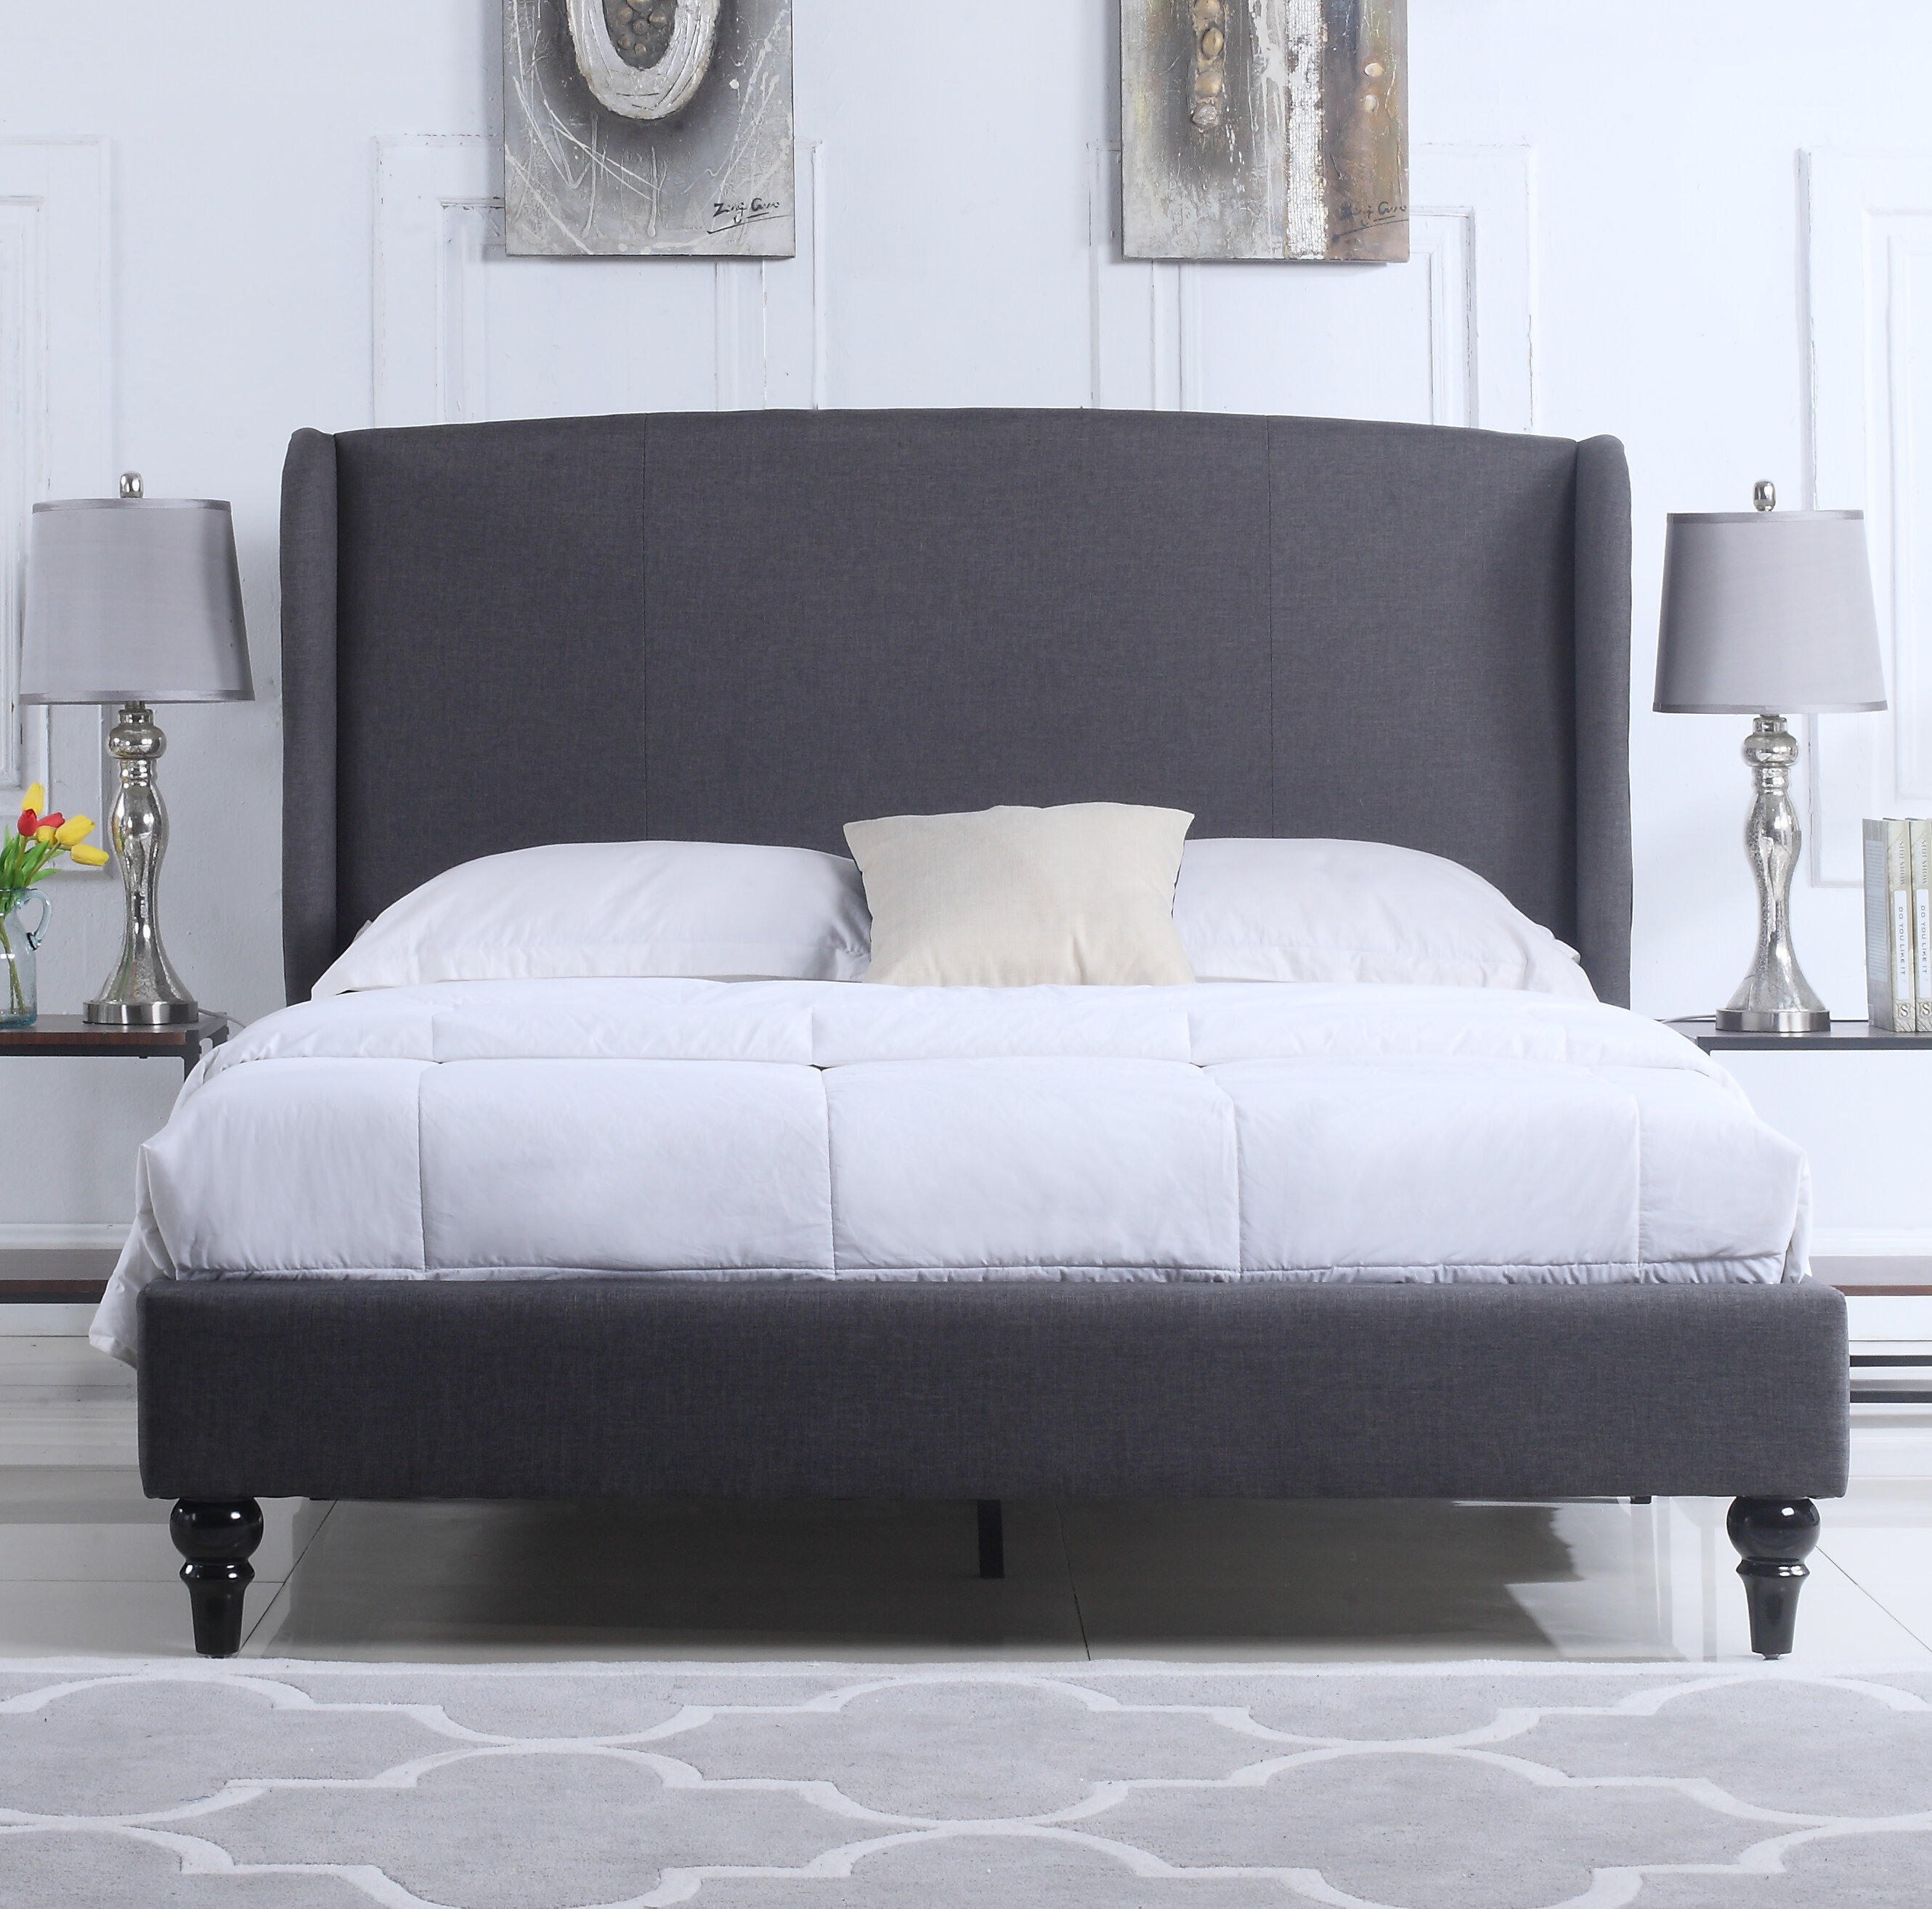 linen dark wallpaint photos walmart padded tufted simone com grey designs multiple sizes black homevance headboard country bedroom velvet upholstered of queen wingback curtis i gray light full size